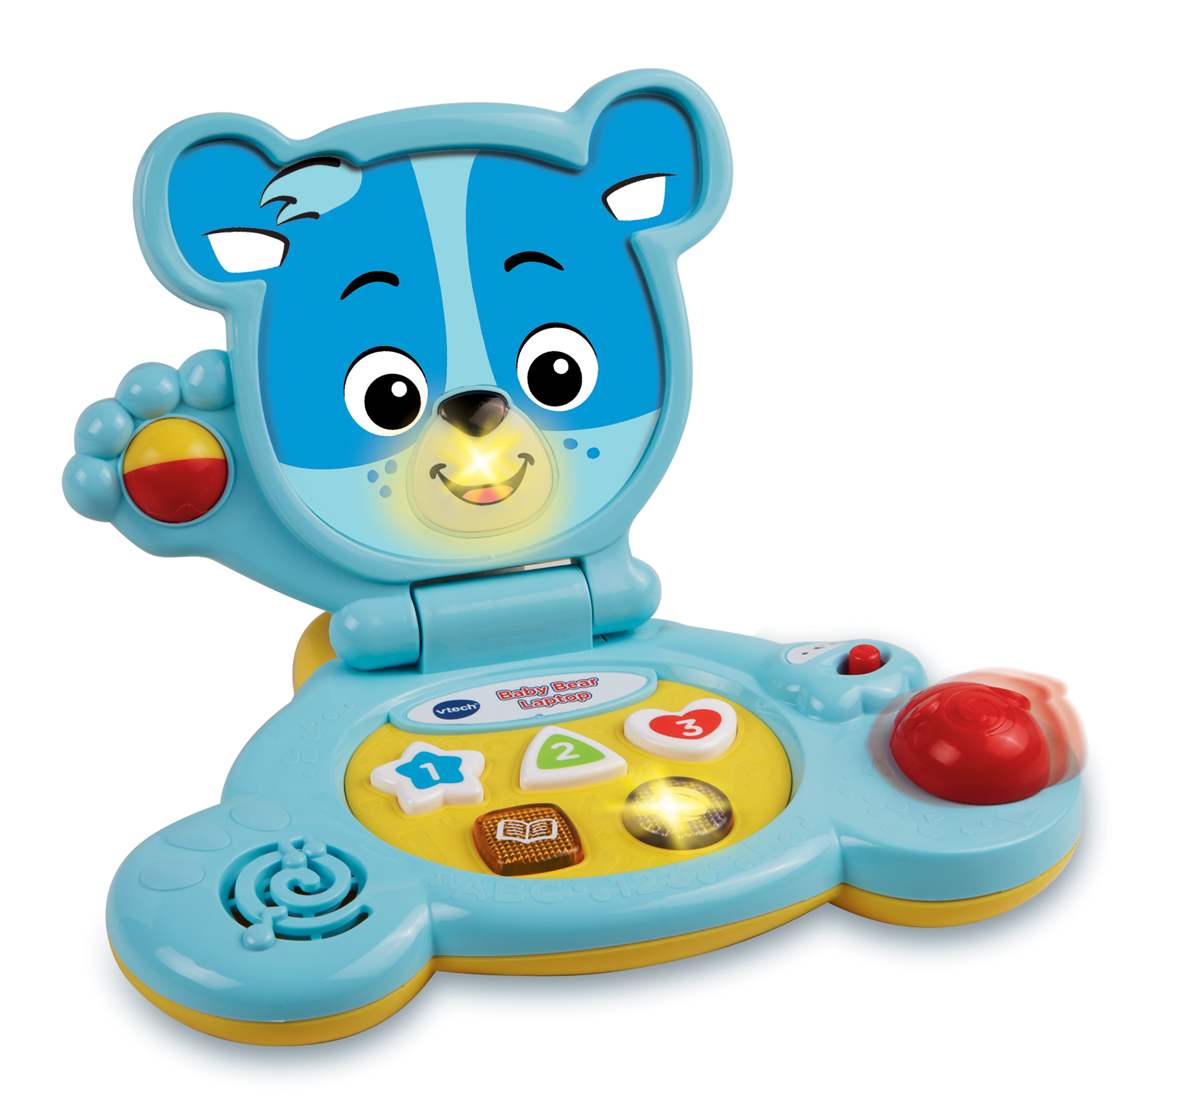 NEW KIDS VTECH BABY BEAR LAPTOP CHILDRENS INTERACTIVE TOY ...